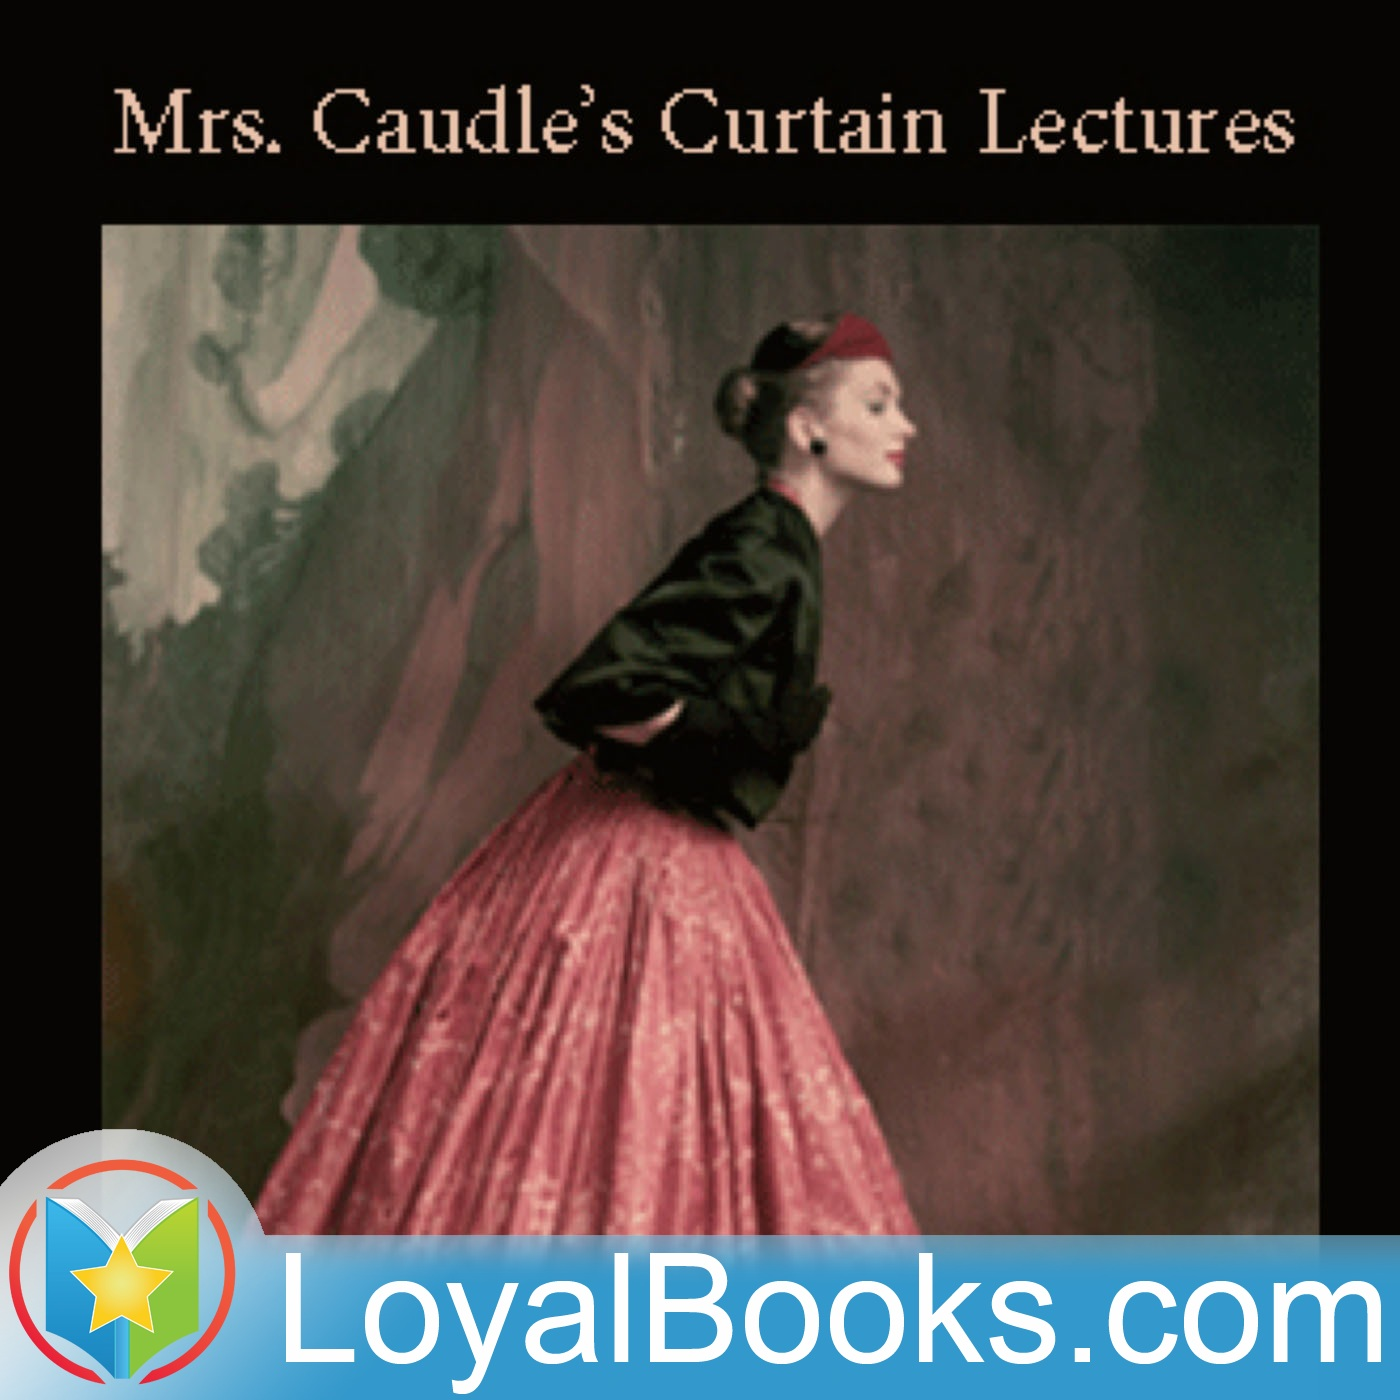 <![CDATA[Mrs. Caudle's Curtain Lectures by Douglas William Jerrold]]>